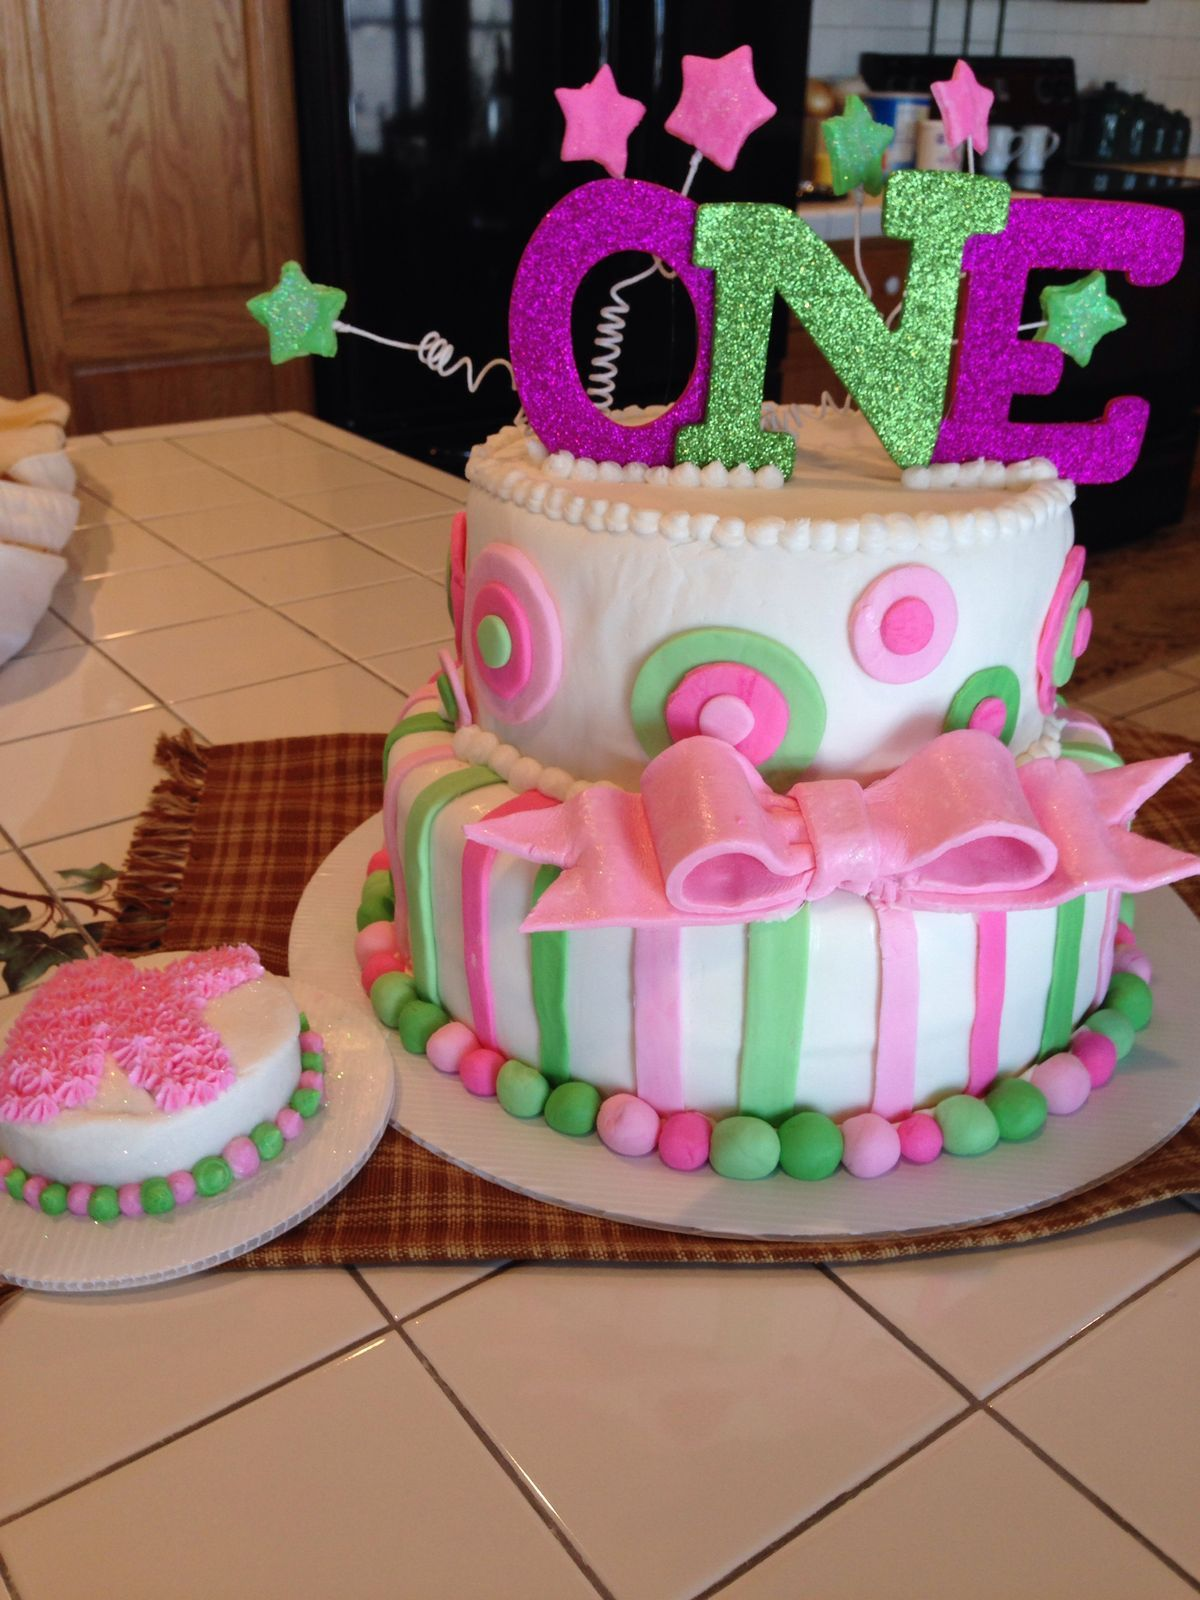 Pin by Heather Wisnowski on Allison First birthday cakes